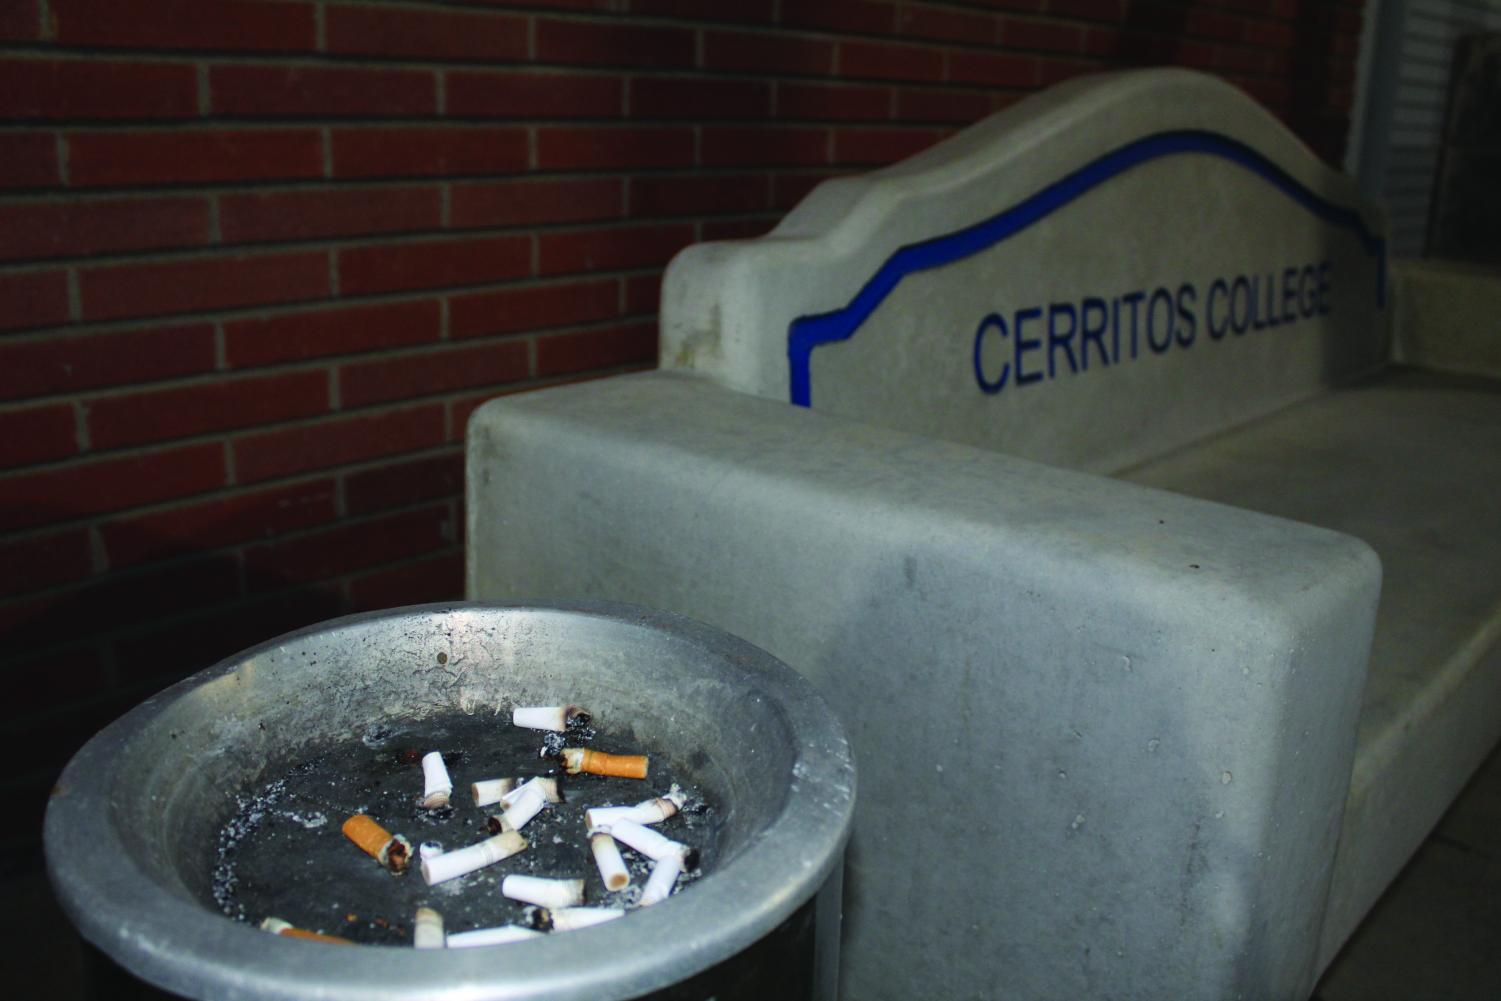 The proposed solution for a smoke-free campus would limit designated smoking areas due to disadvantages and health risks, according to Henry Rios, alcohol and other drugs prevention manager for Norwalk and Hawaiian Gardens. On Feb. 20, the Associated Students of Cerritos College discussed the topic at length.